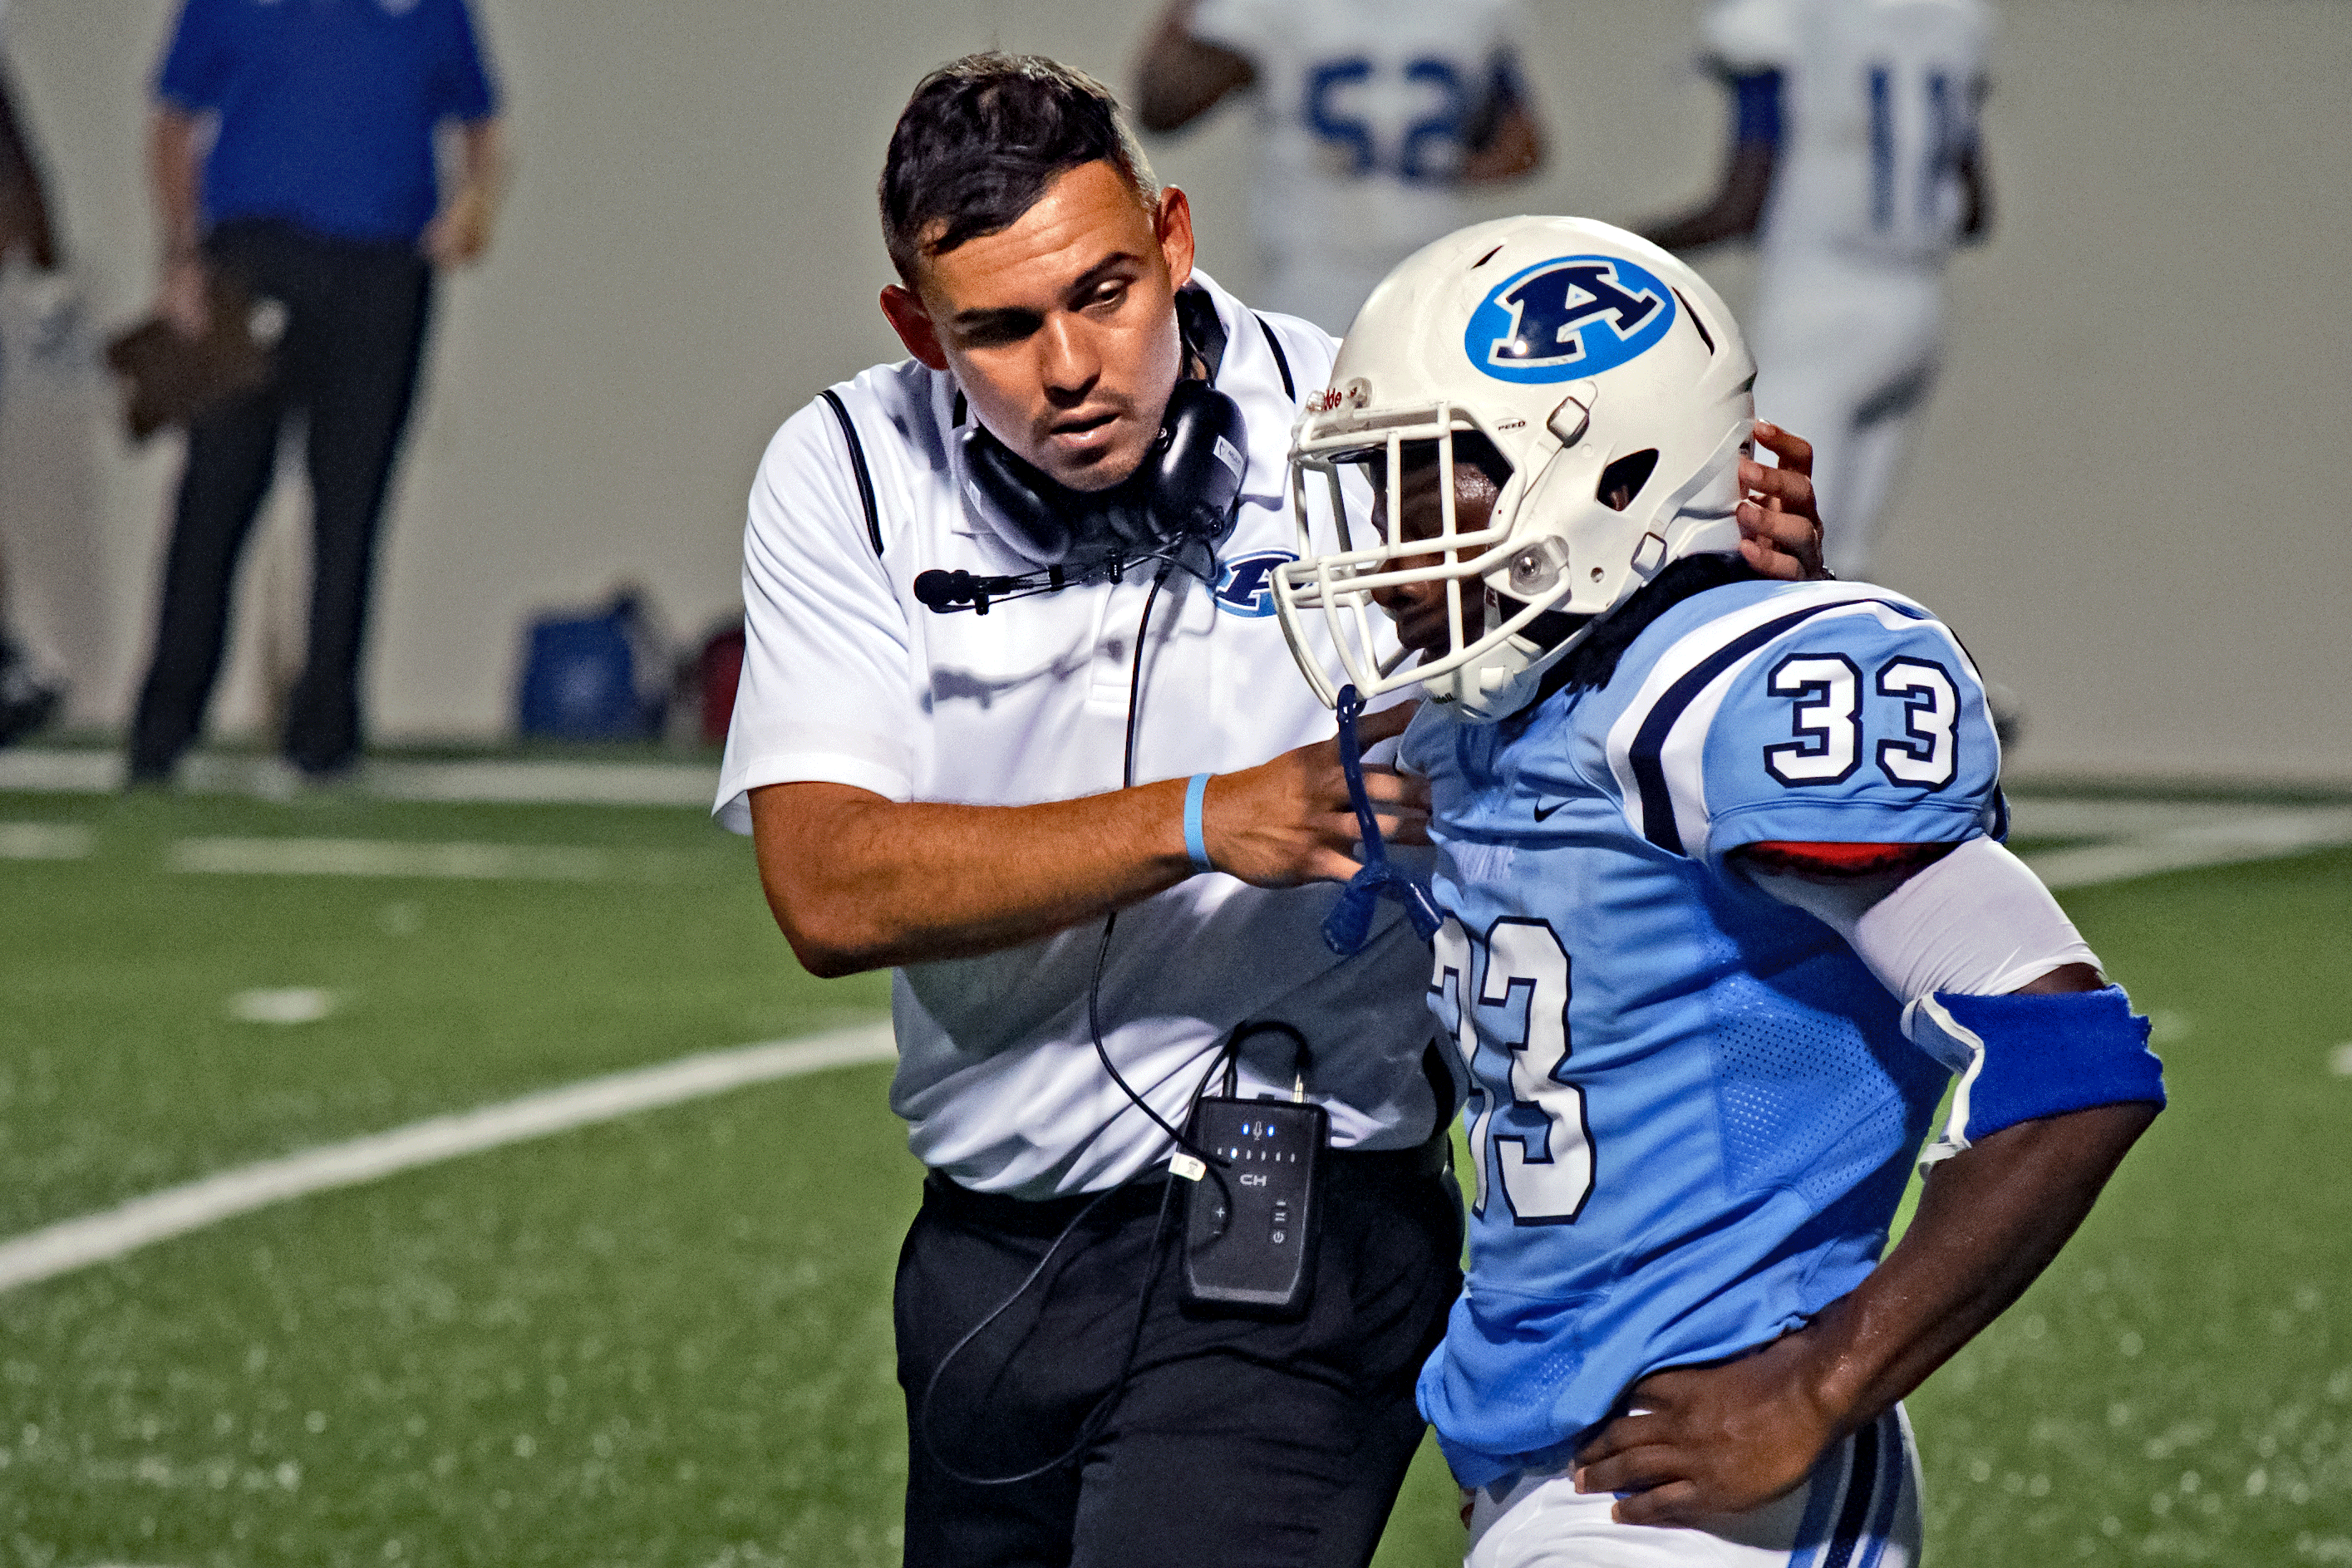 Aldine head coach James Kowalewski gives pointers to Mustang RB Michael McLennon during the 2016 season.